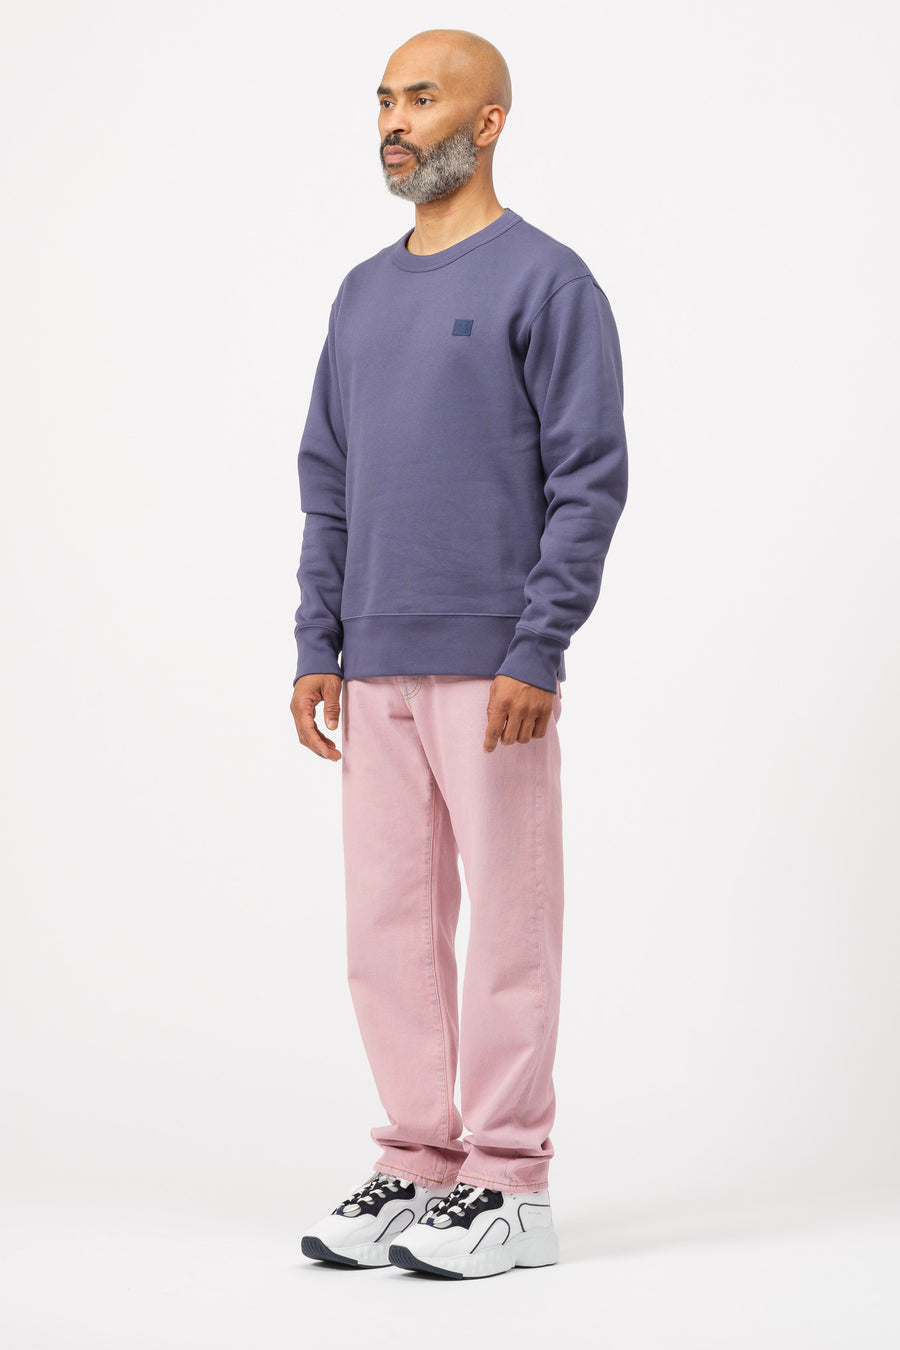 Acne Studios Fairview Face Crewneck in Denim Blue - Notre